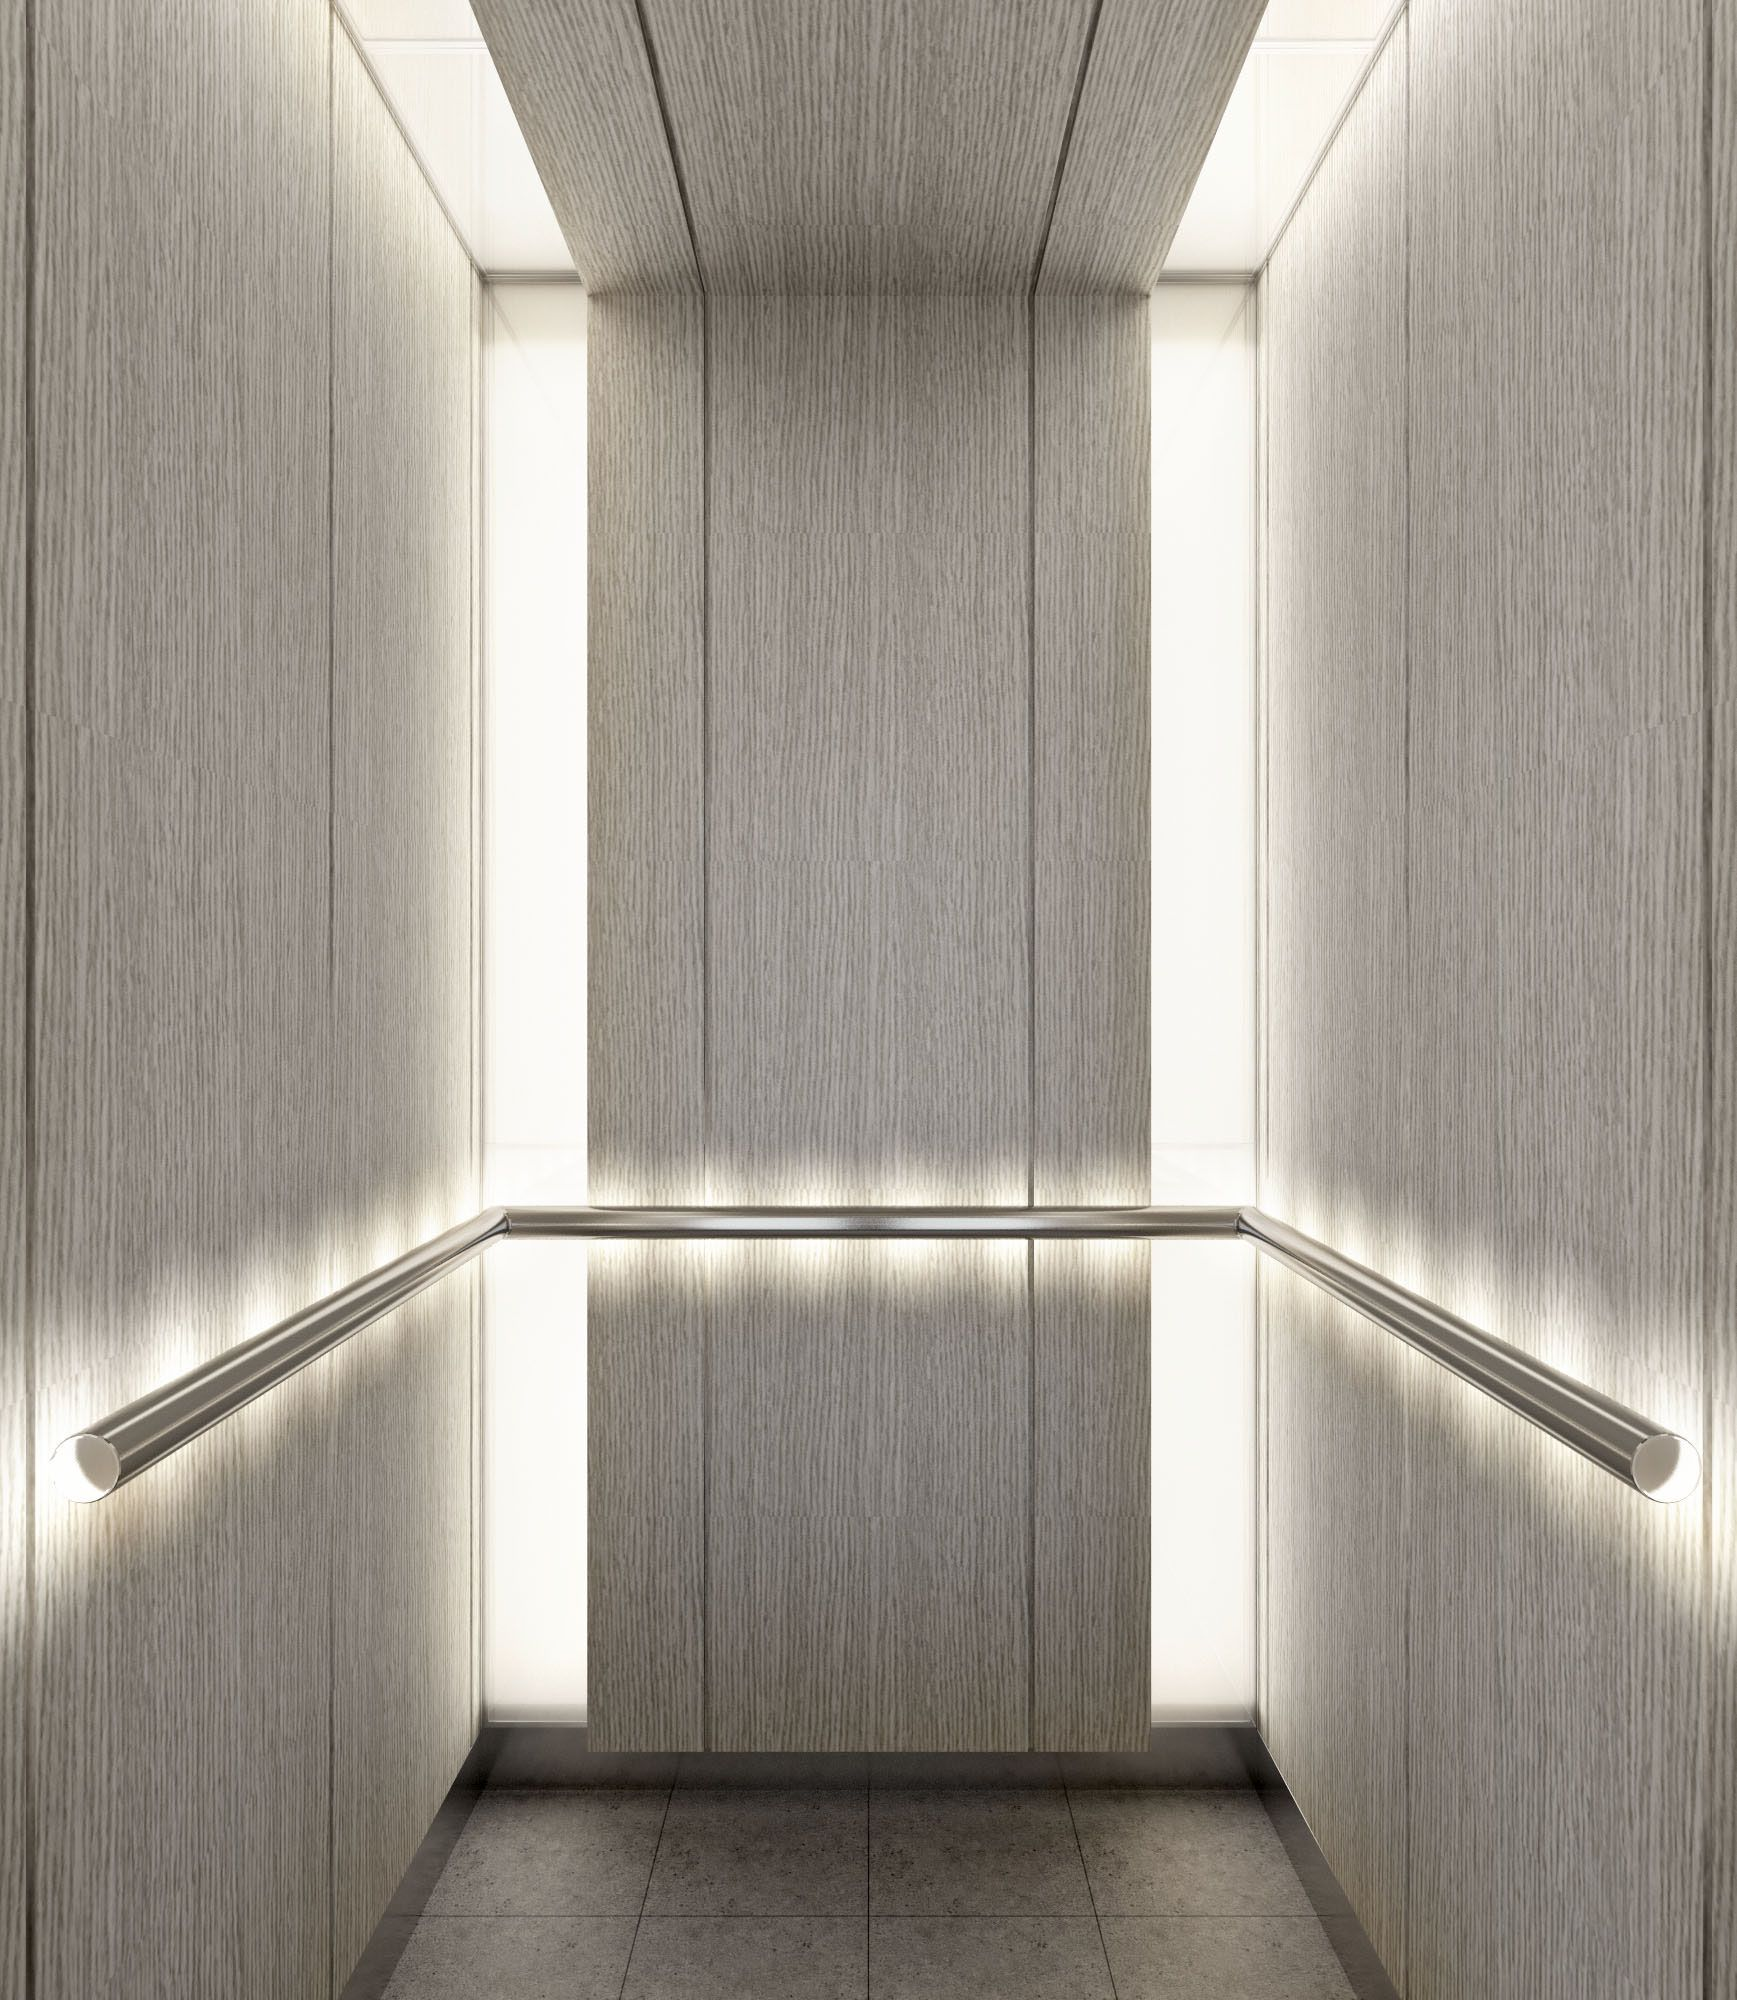 ELEVATOR LOBBY AND INTERIOR CAB INTERIOR DESIGN IDEAS | Vida